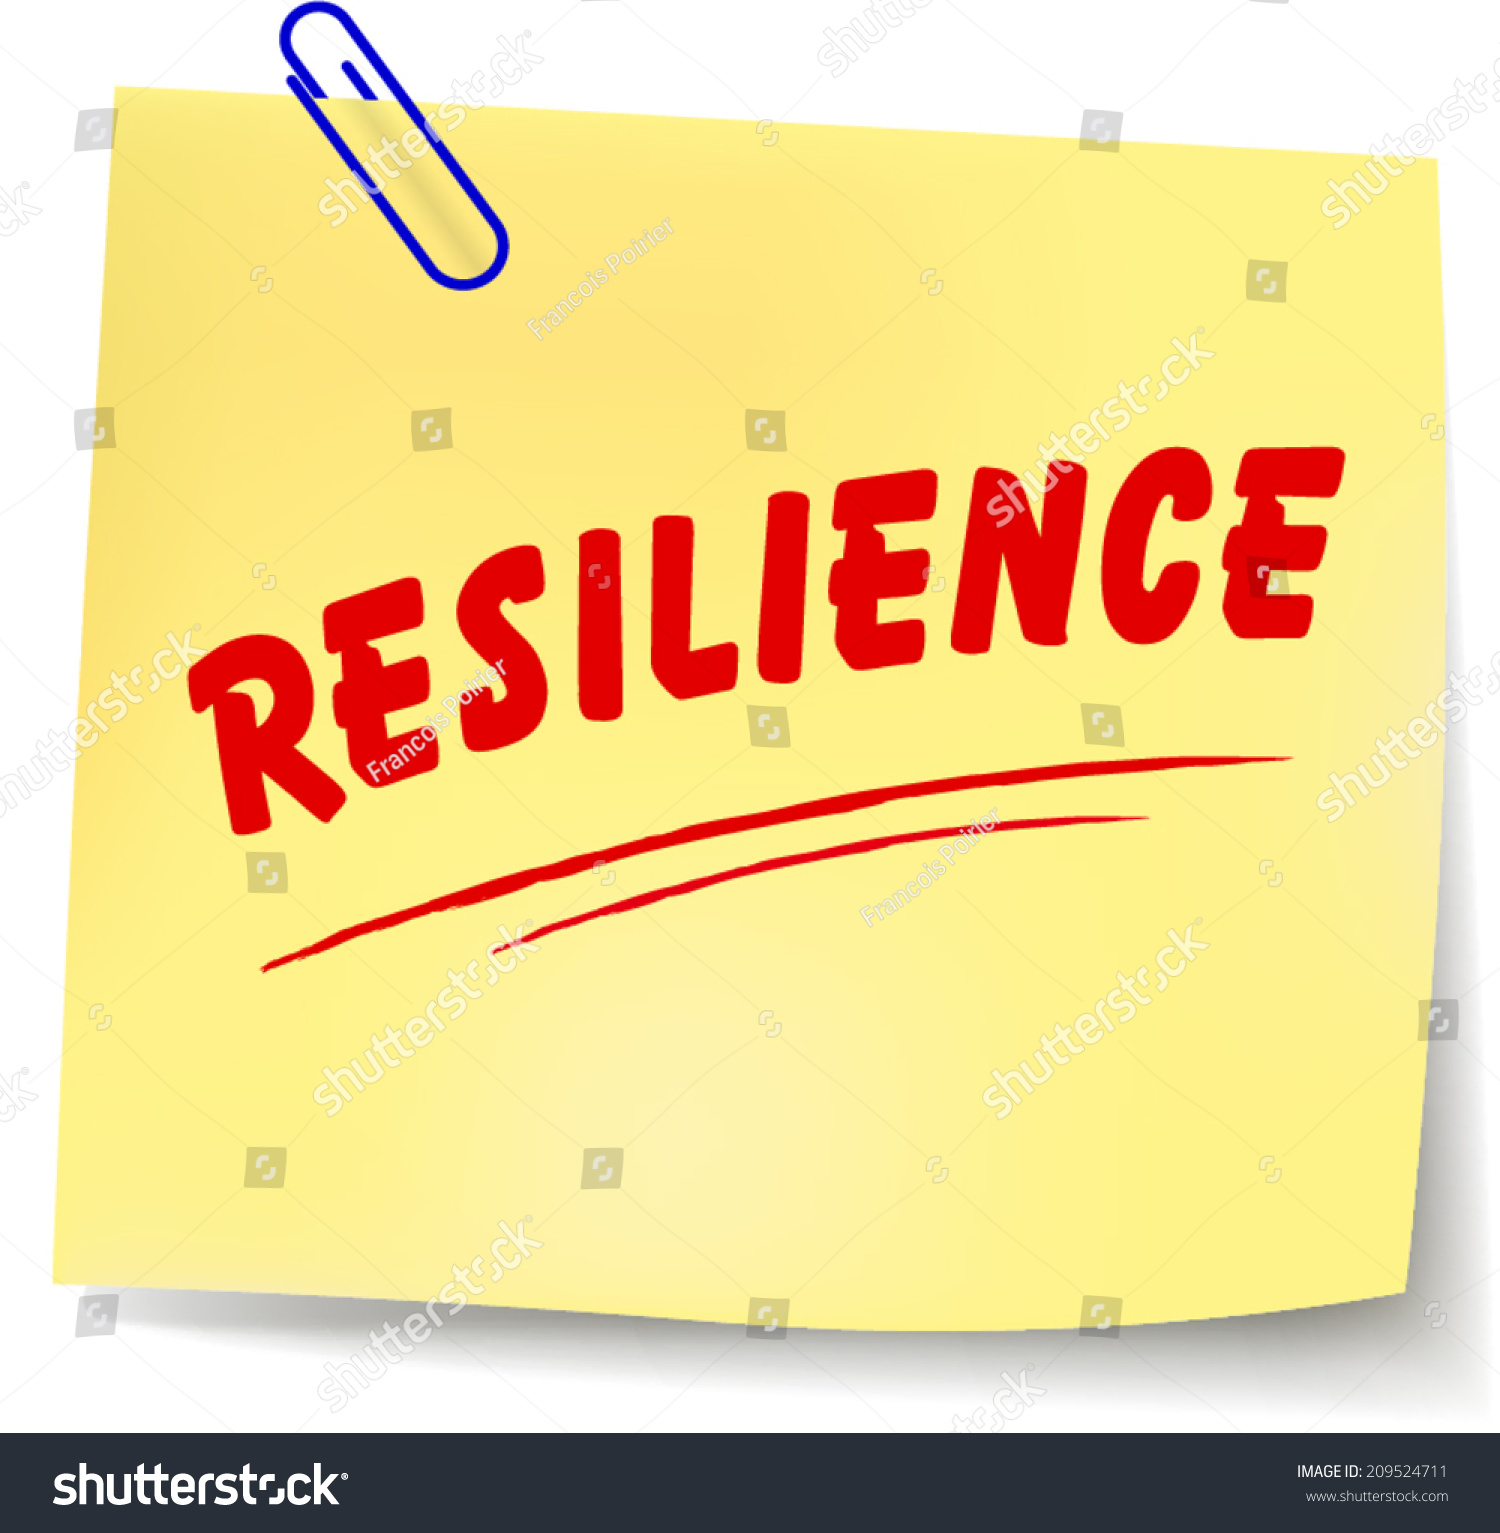 resilience essay matlab homework help pros and cons of paper example